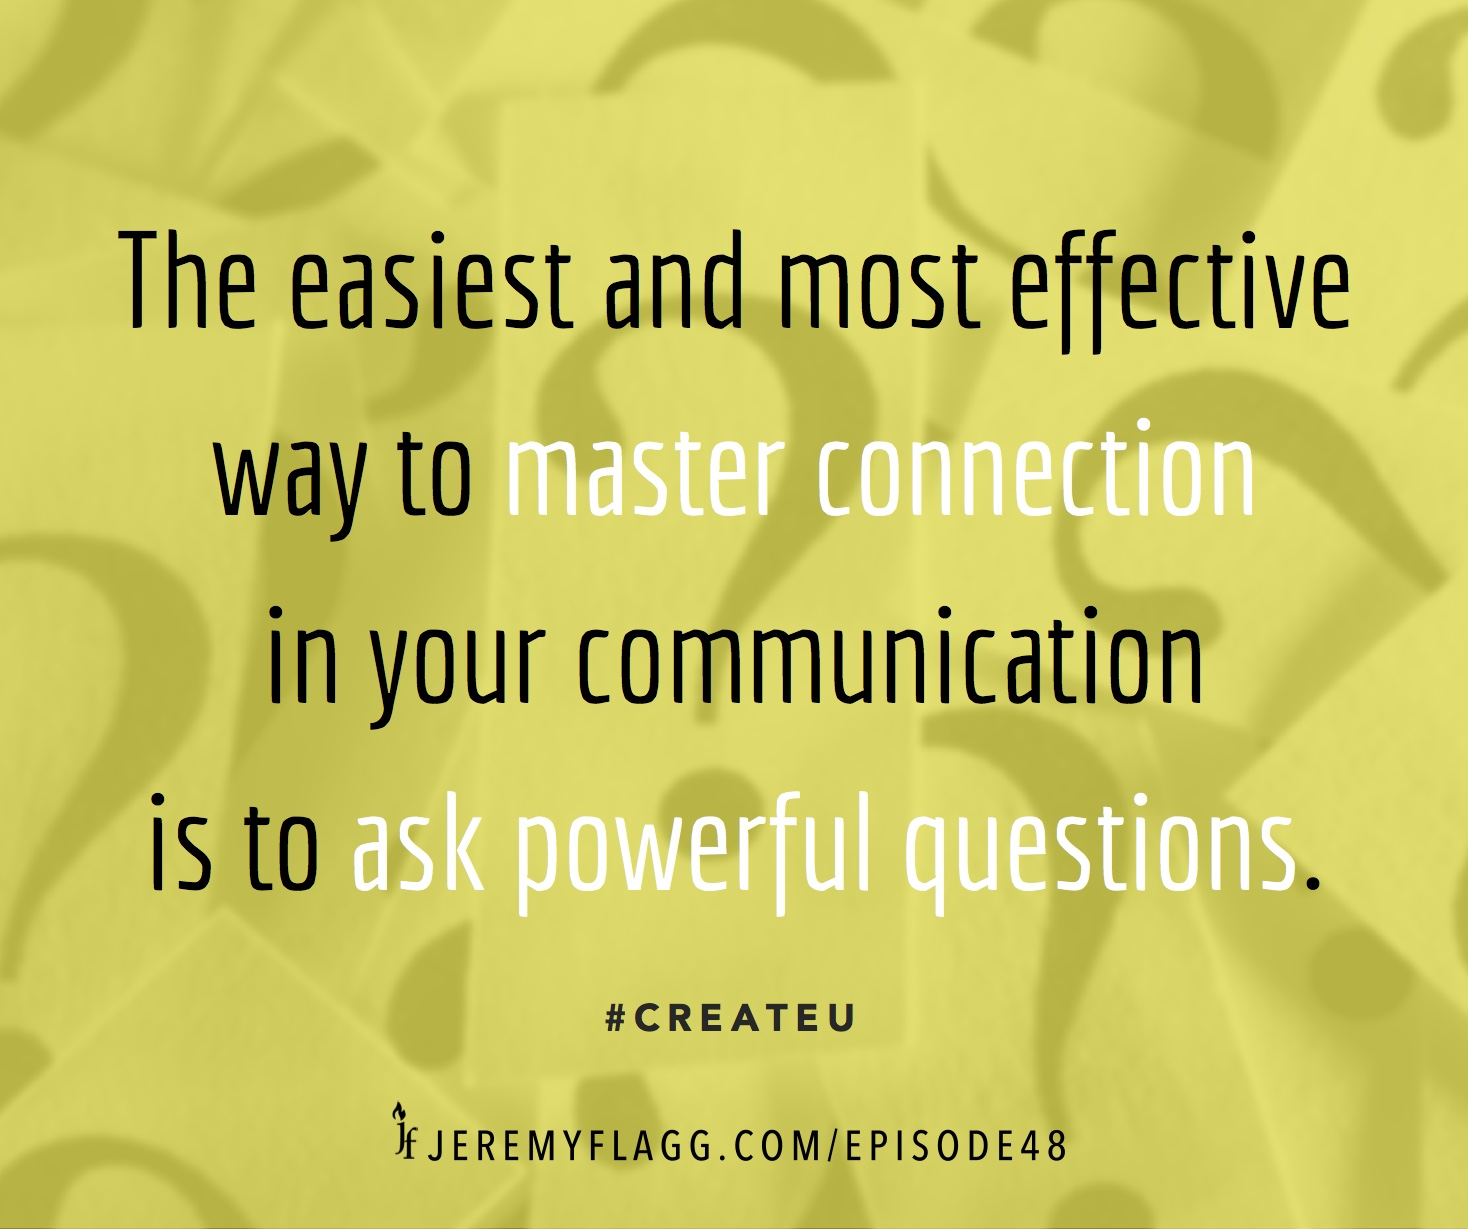 Ask-powerful-questions-Jeremy-Flagg-quote-FB